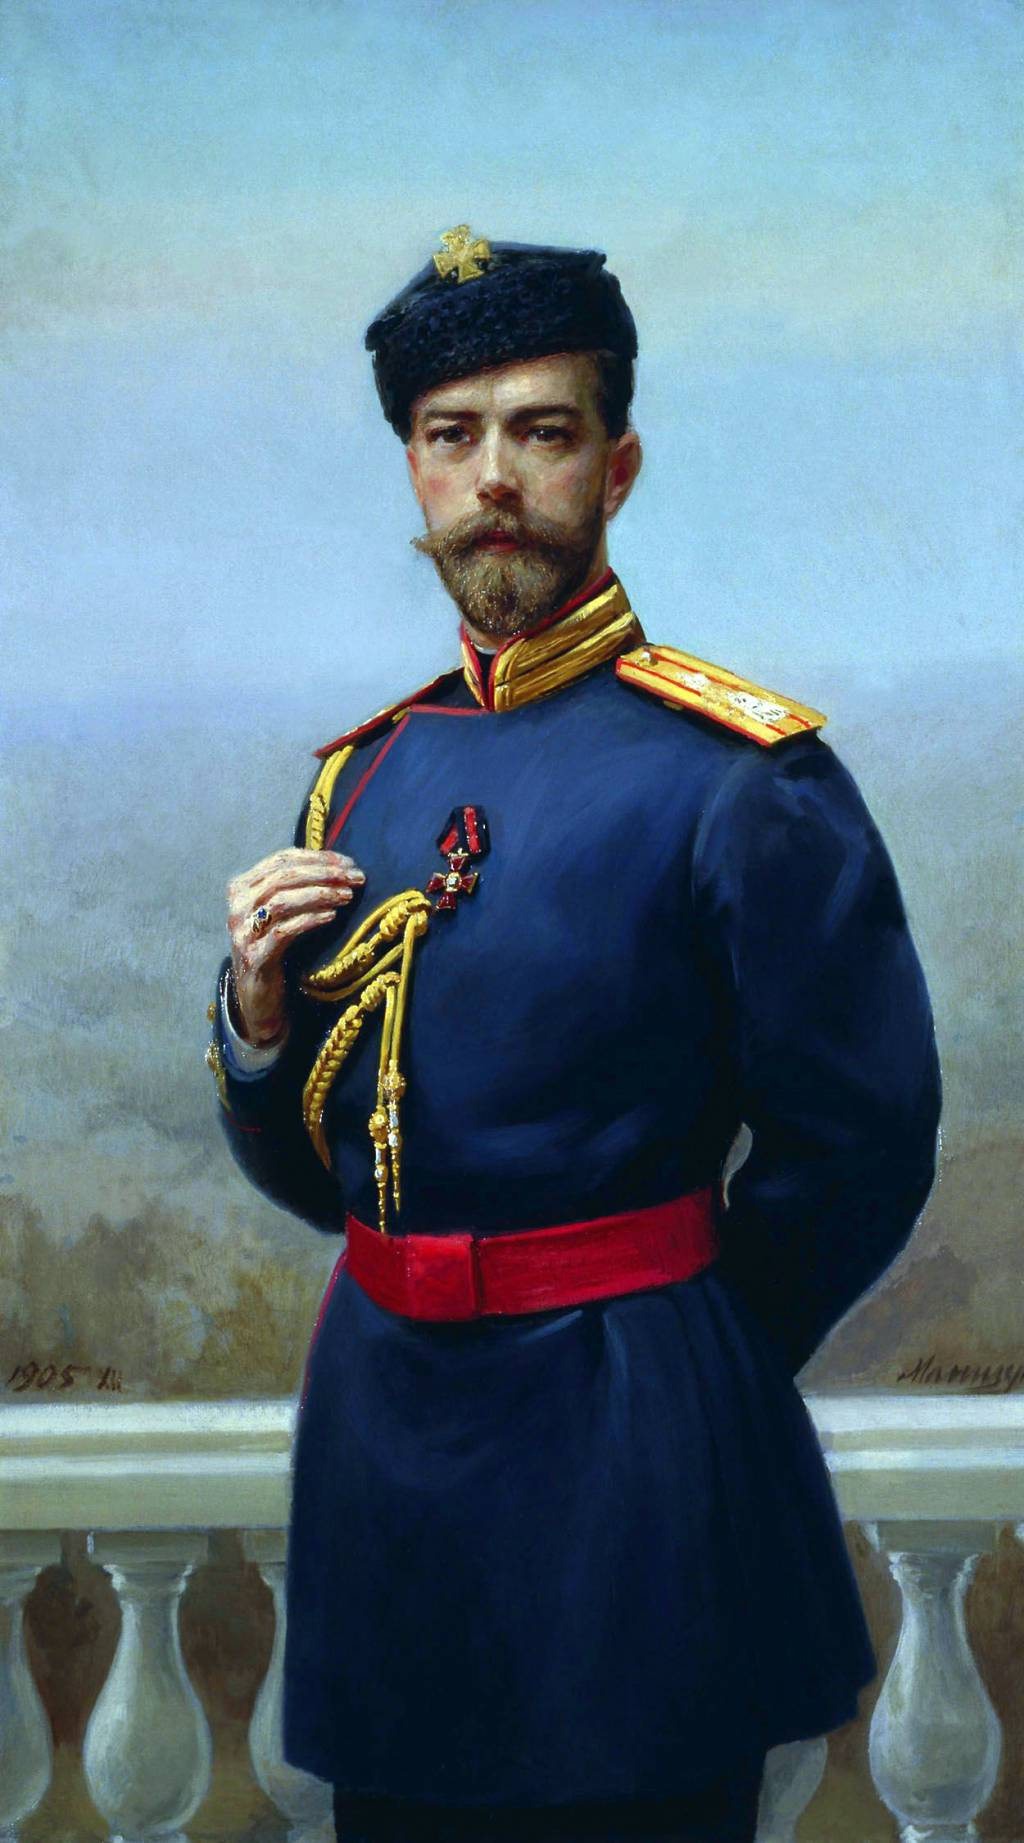 nicholas tsar essay Essay about tsar nicholas ii nicholas ii abdicated the throne in 1917 up until then, the russian royal family had ruled for over three hundred years throughout this period, they faced many problems and uneasy predicaments, a lot of these centering on nicholas ii as tsar.